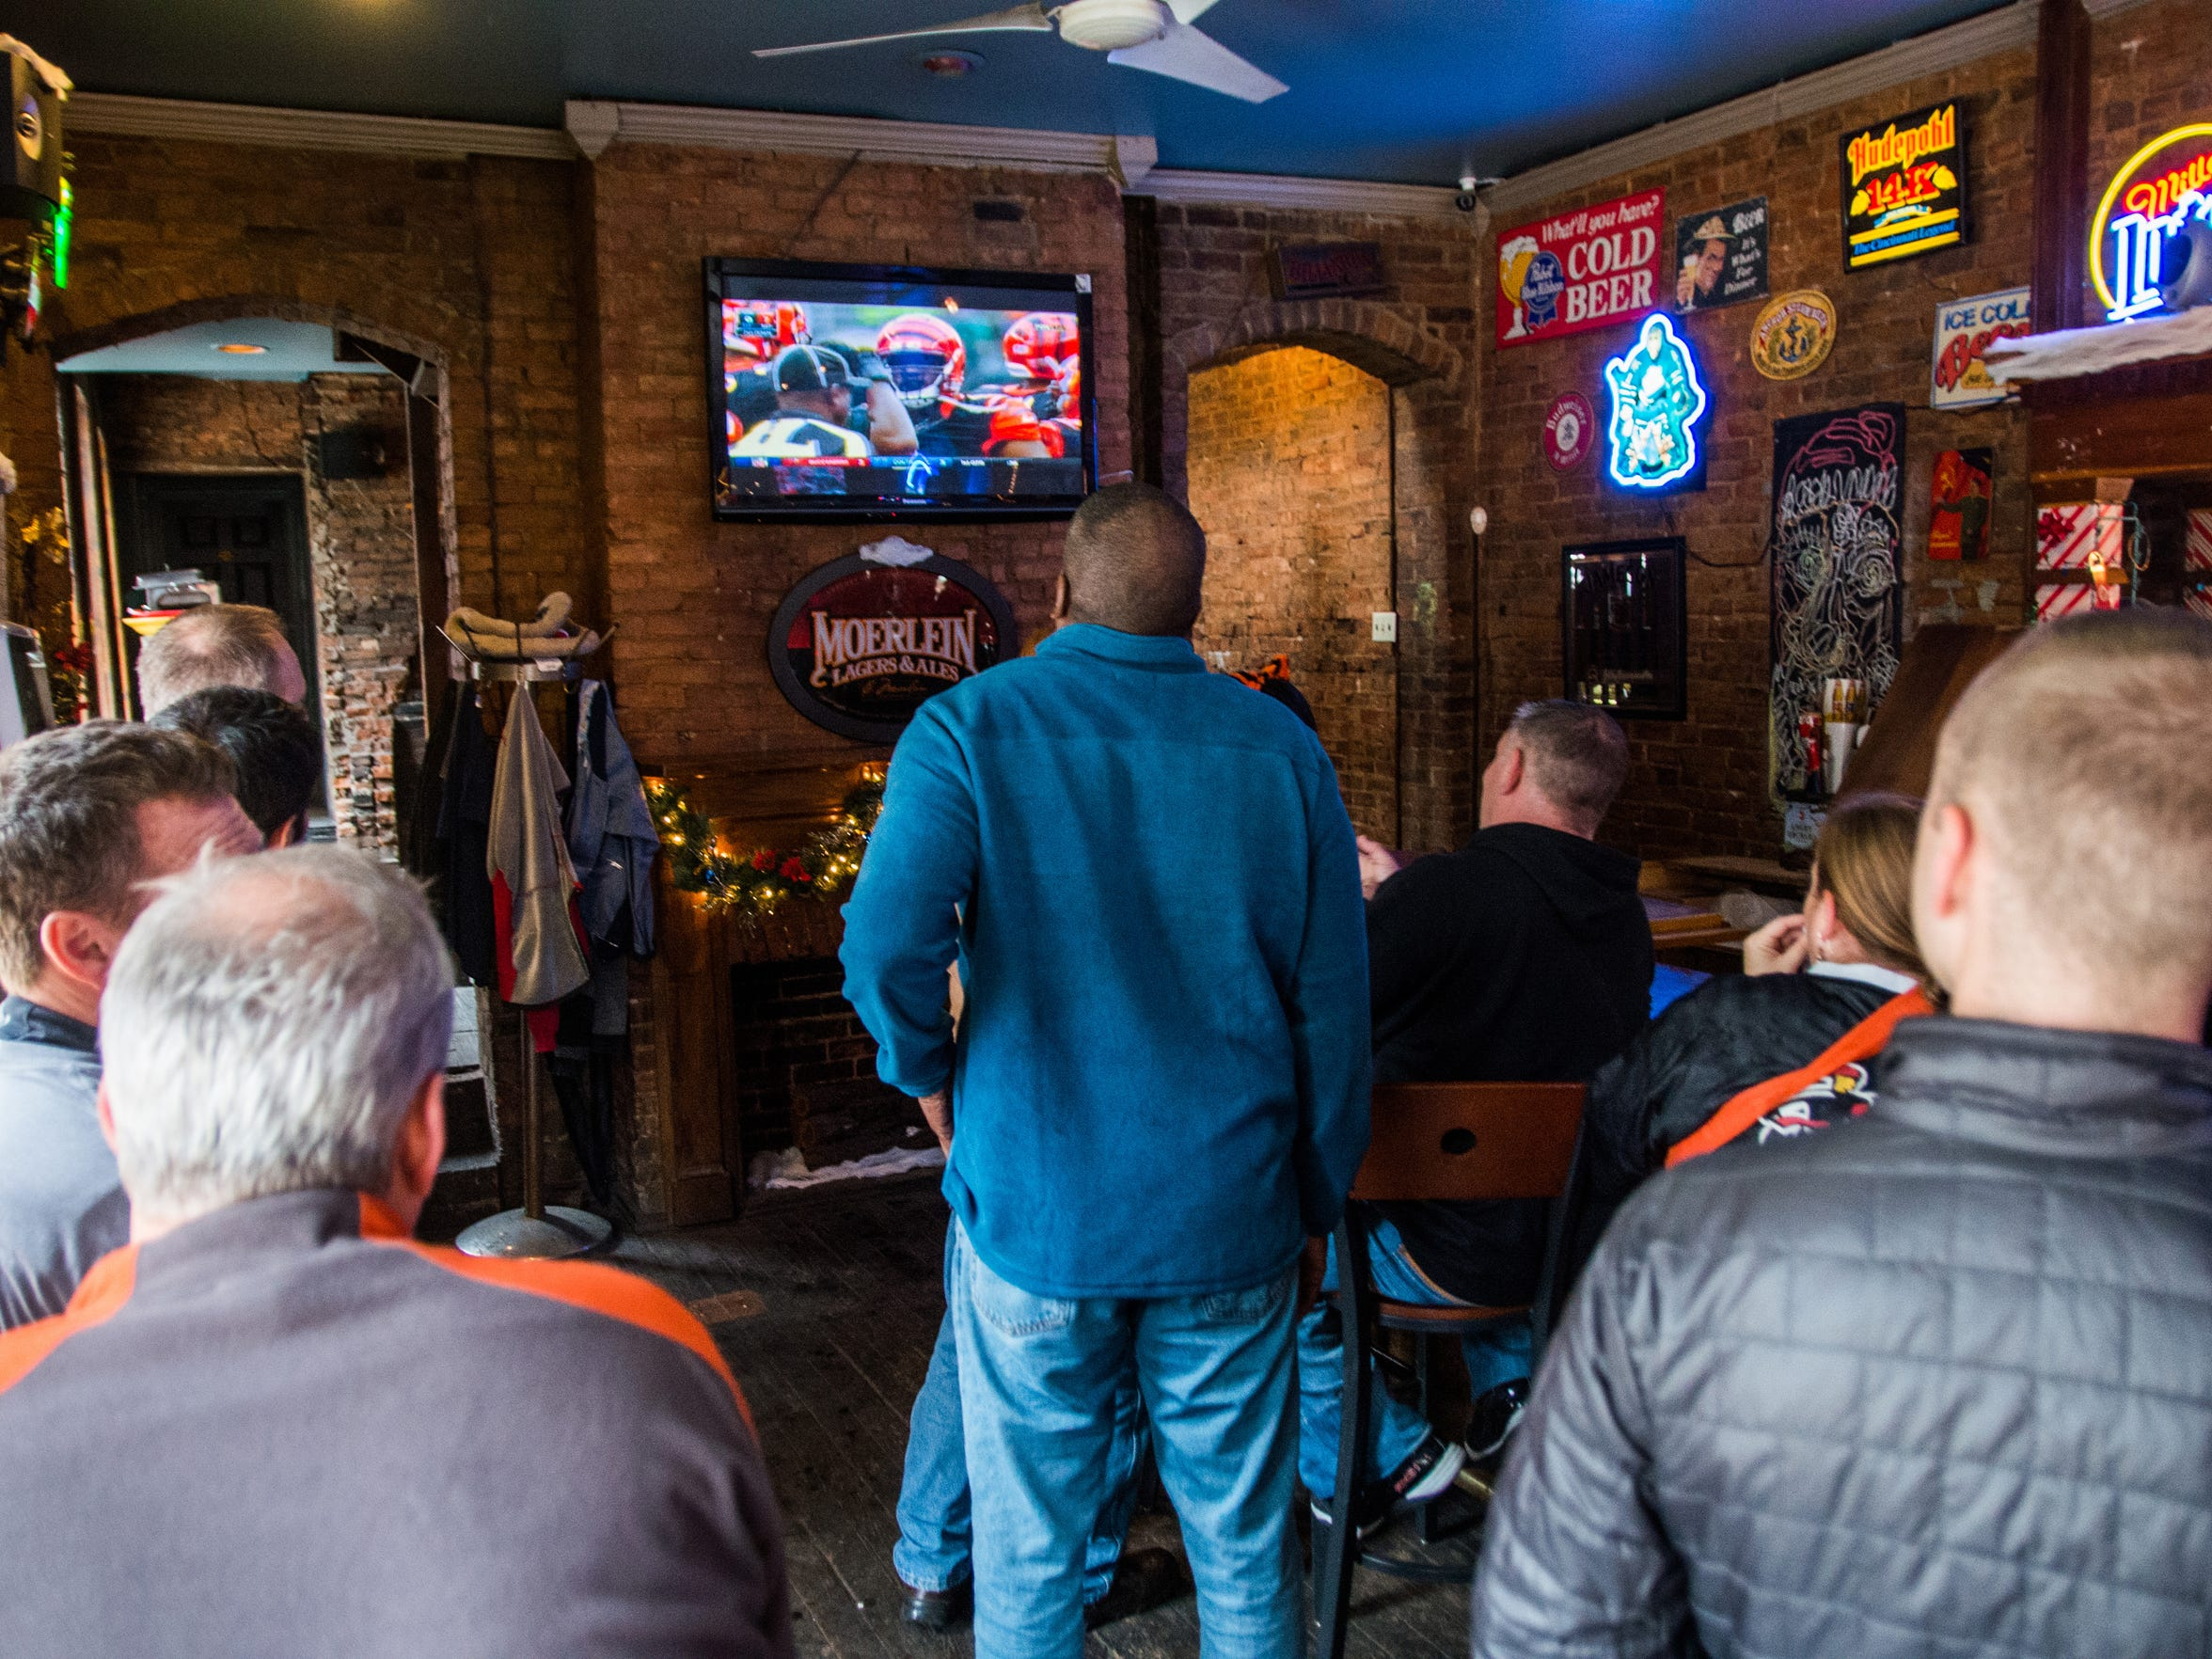 Community members gather inside Milton's Bar Nov. 29 for Bengals' game days. The bar has hosted a potluck for the fans for several years.